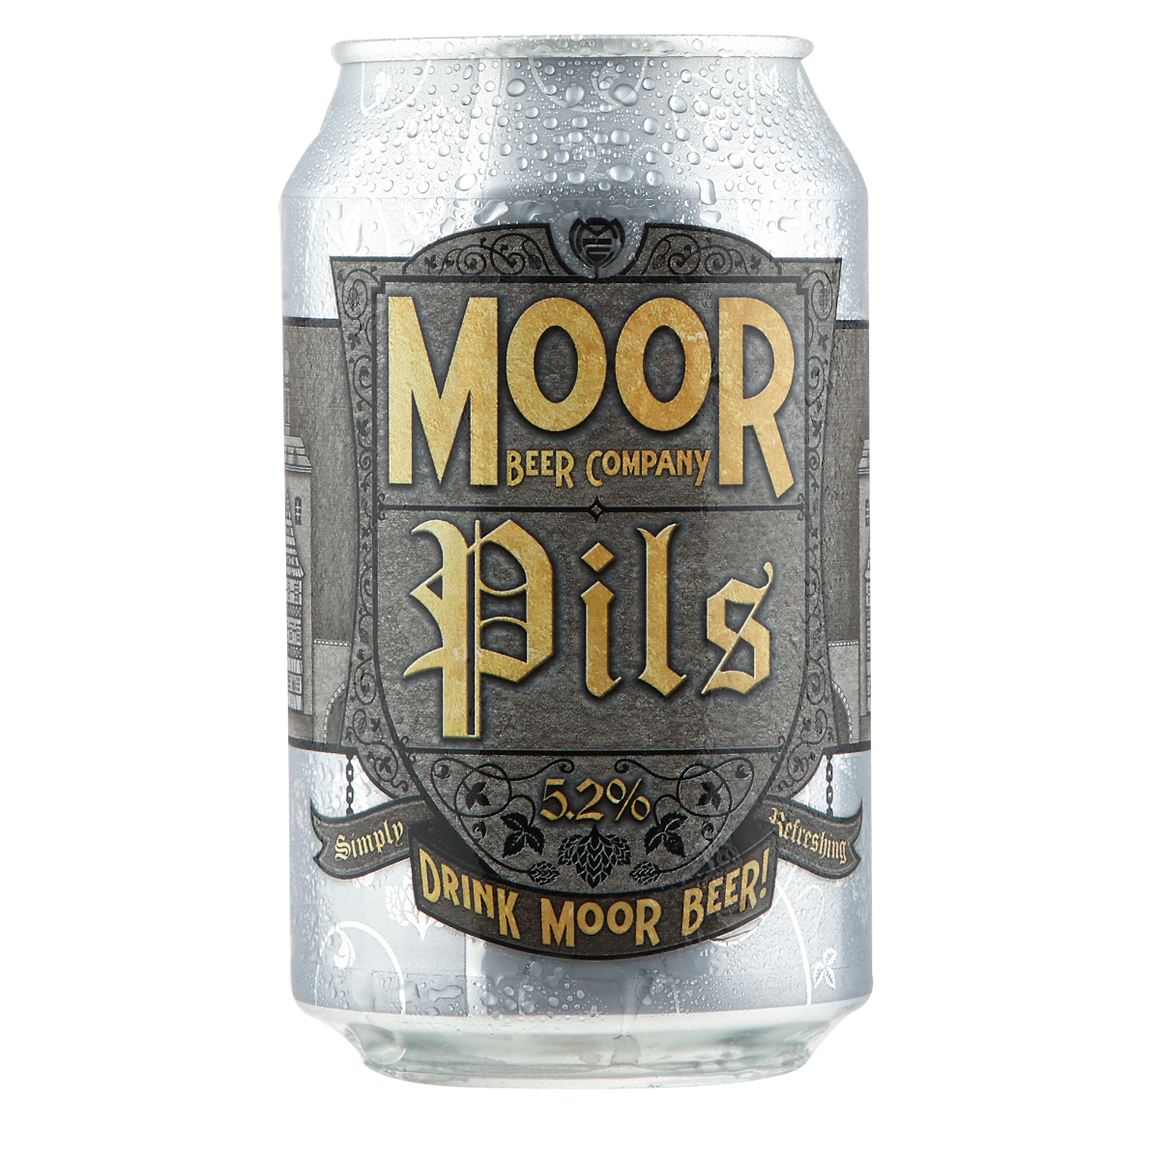 Moor Beer Company - Pils - 330ml Can